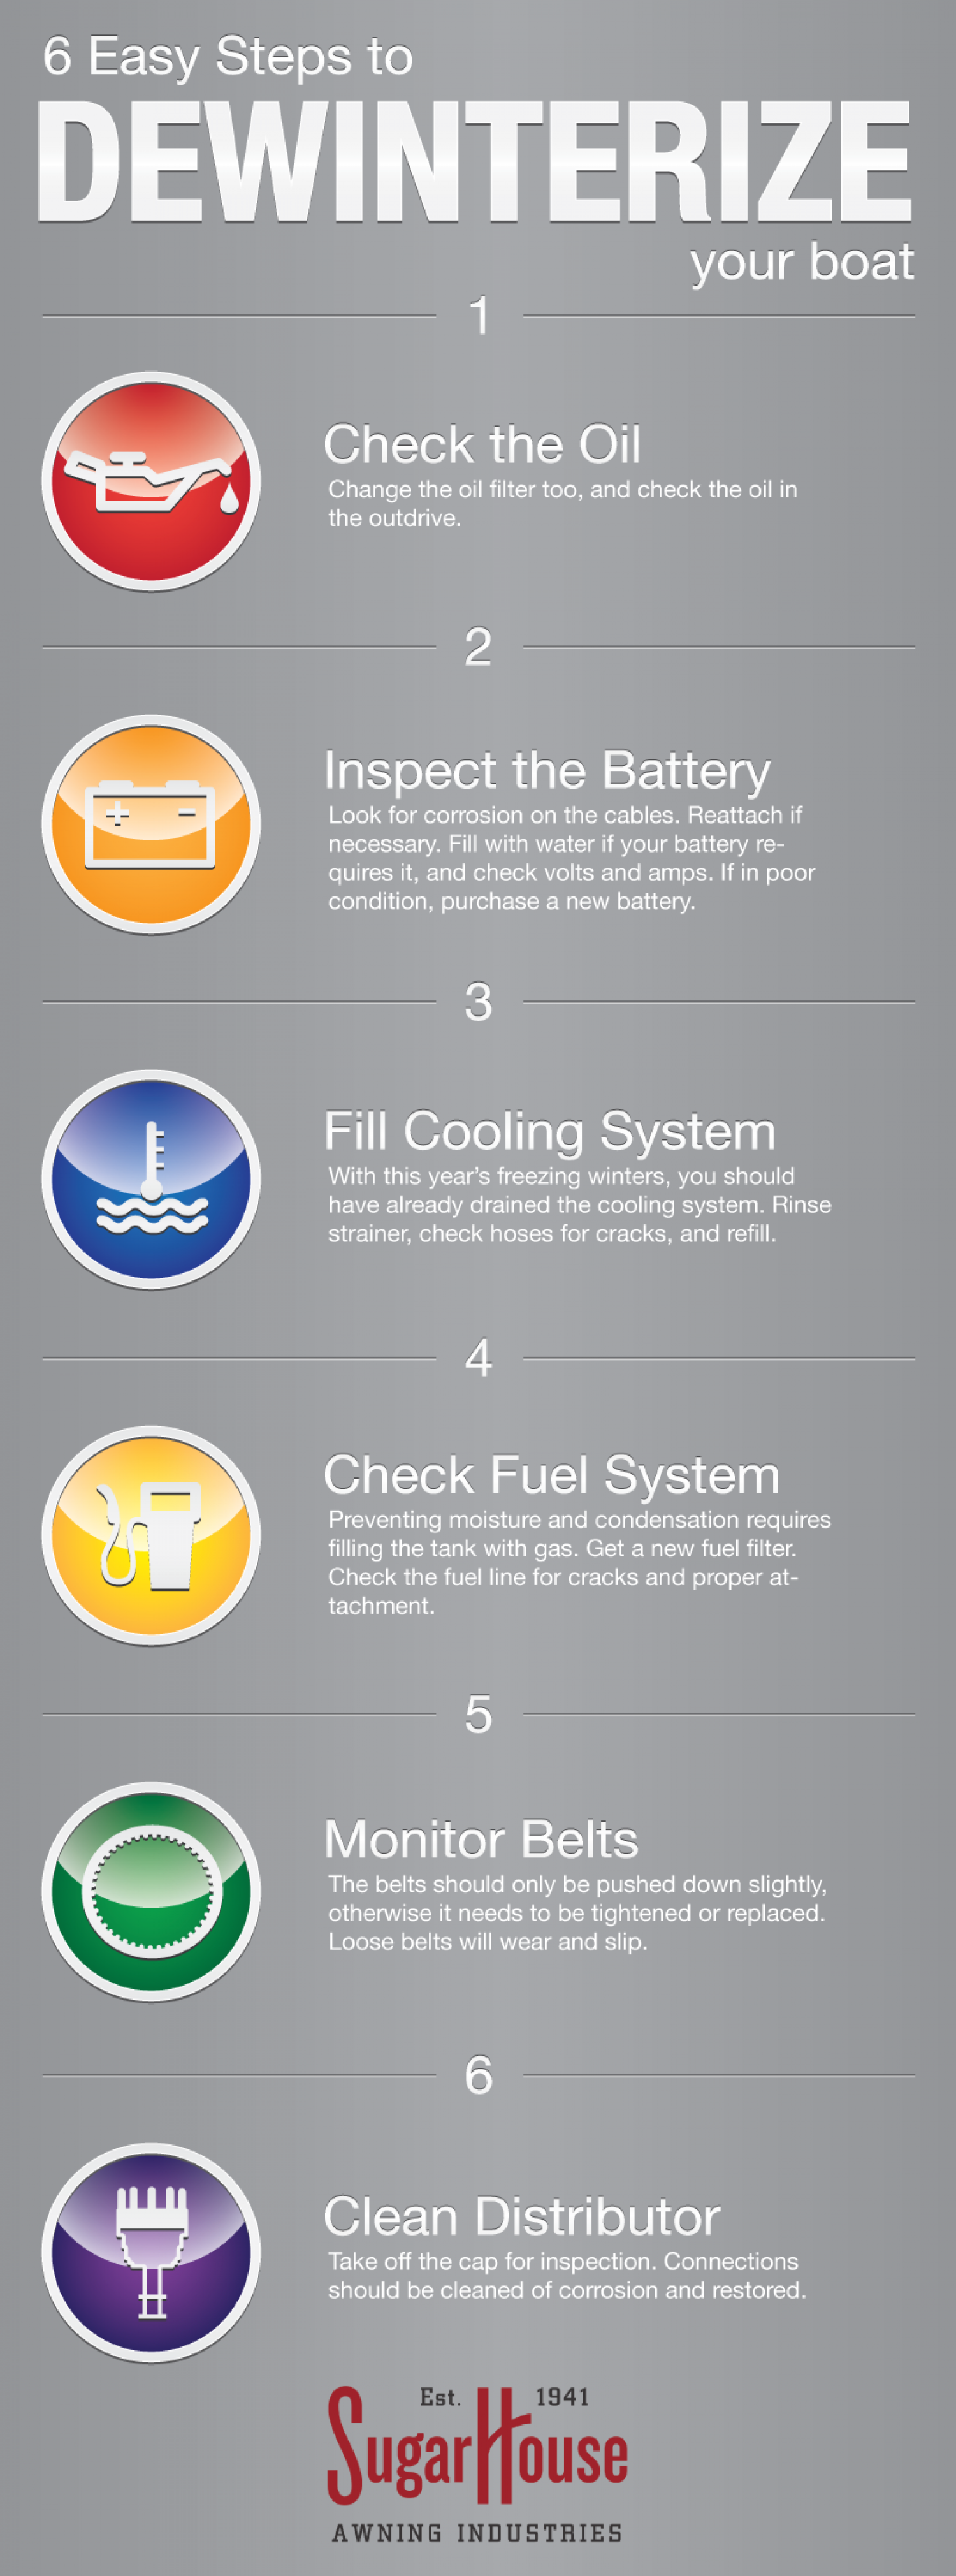 6 Ways to Dewinterize Your Boat Infographic